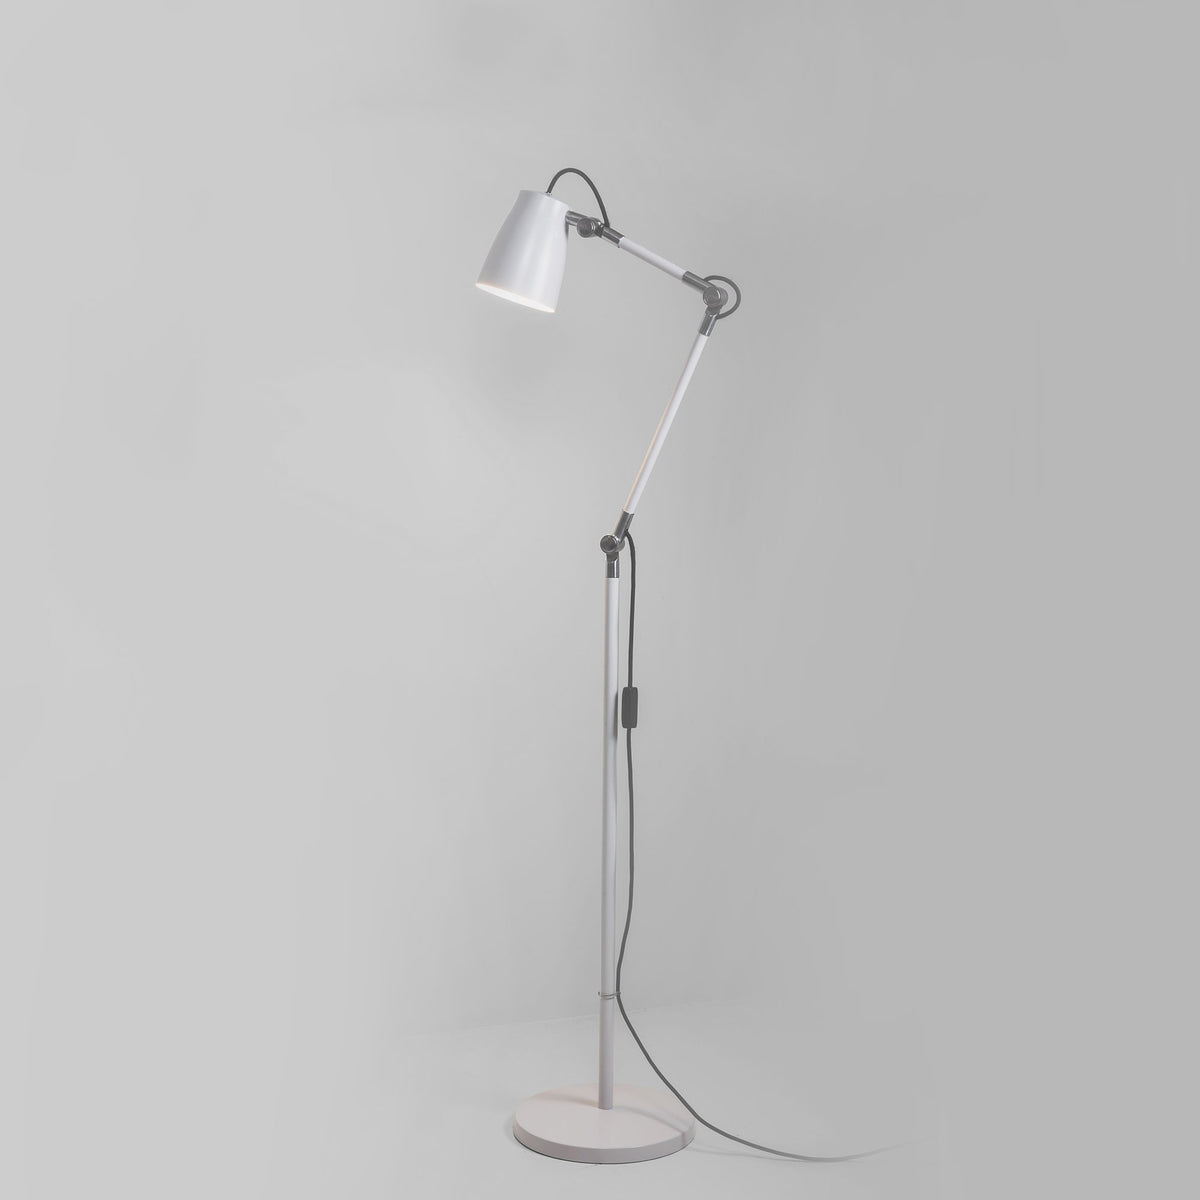 Astro Lighting Atelier Floor Lamp Matt White